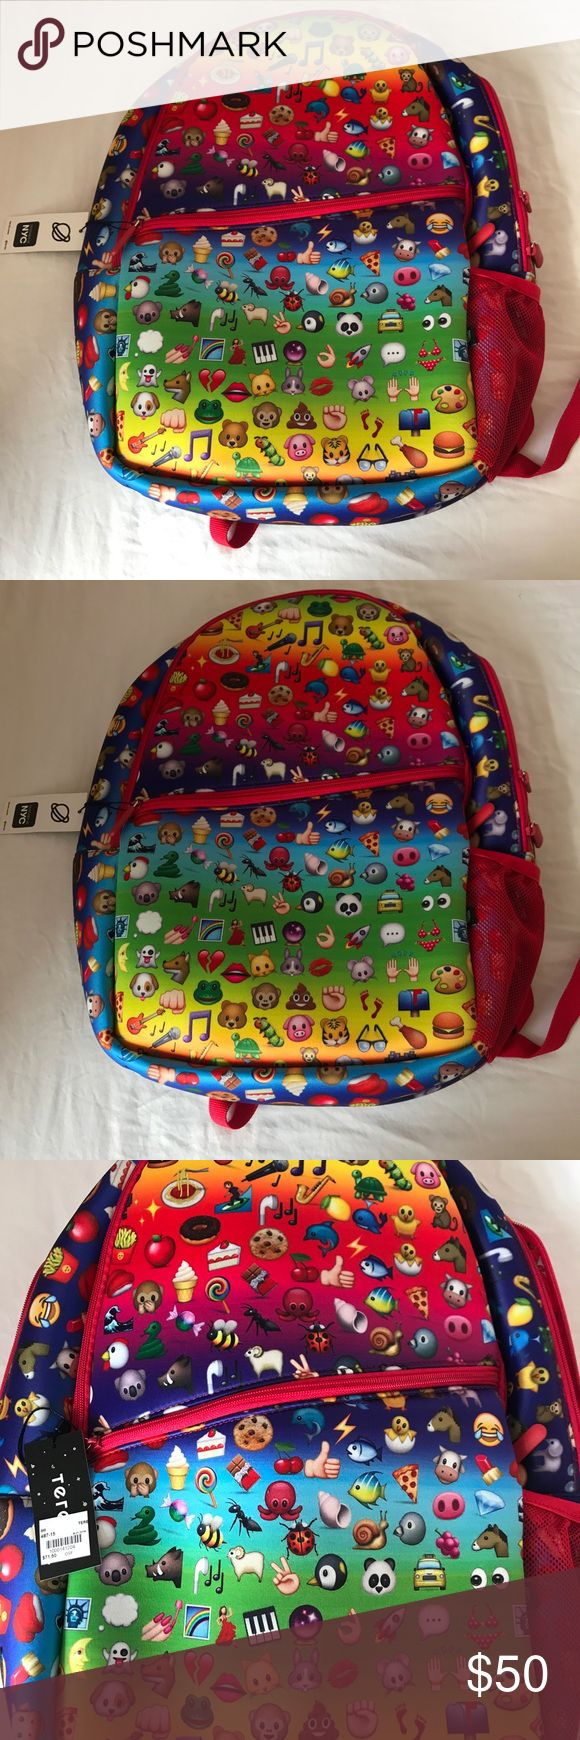 ZARA TEREZ SCHOOL BACKPACK***EMOJI***Large**$71.50 Zara Terez. All over emoji bag. Cushiony material, great for also putting laptops in. Very large and spacious. Great for BACK TO SCHOOL!!!! This bag is perfect for so many different ages. All over emojis!!!! Tags all still attached. Retails for $71.50 + Tax Zara Terez Accessories Bags